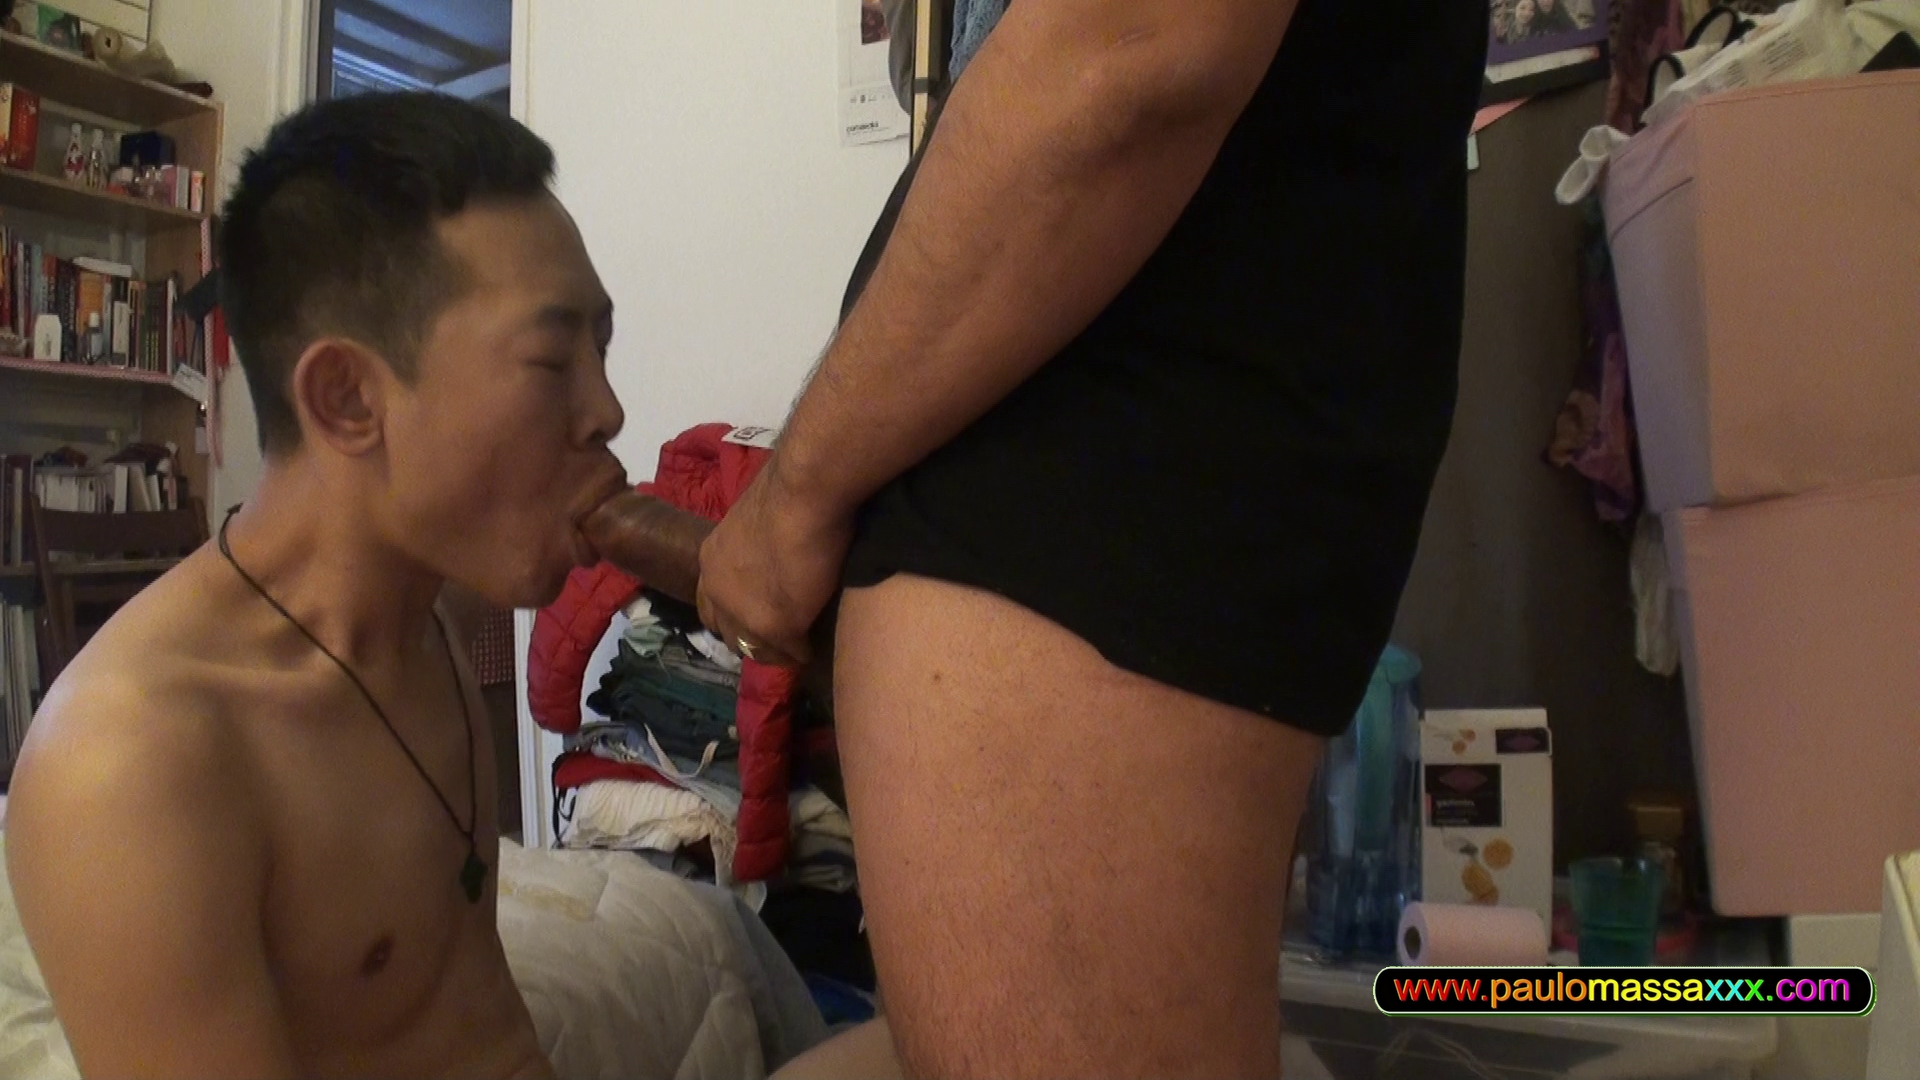 minet gay sex asiatique grosse bite